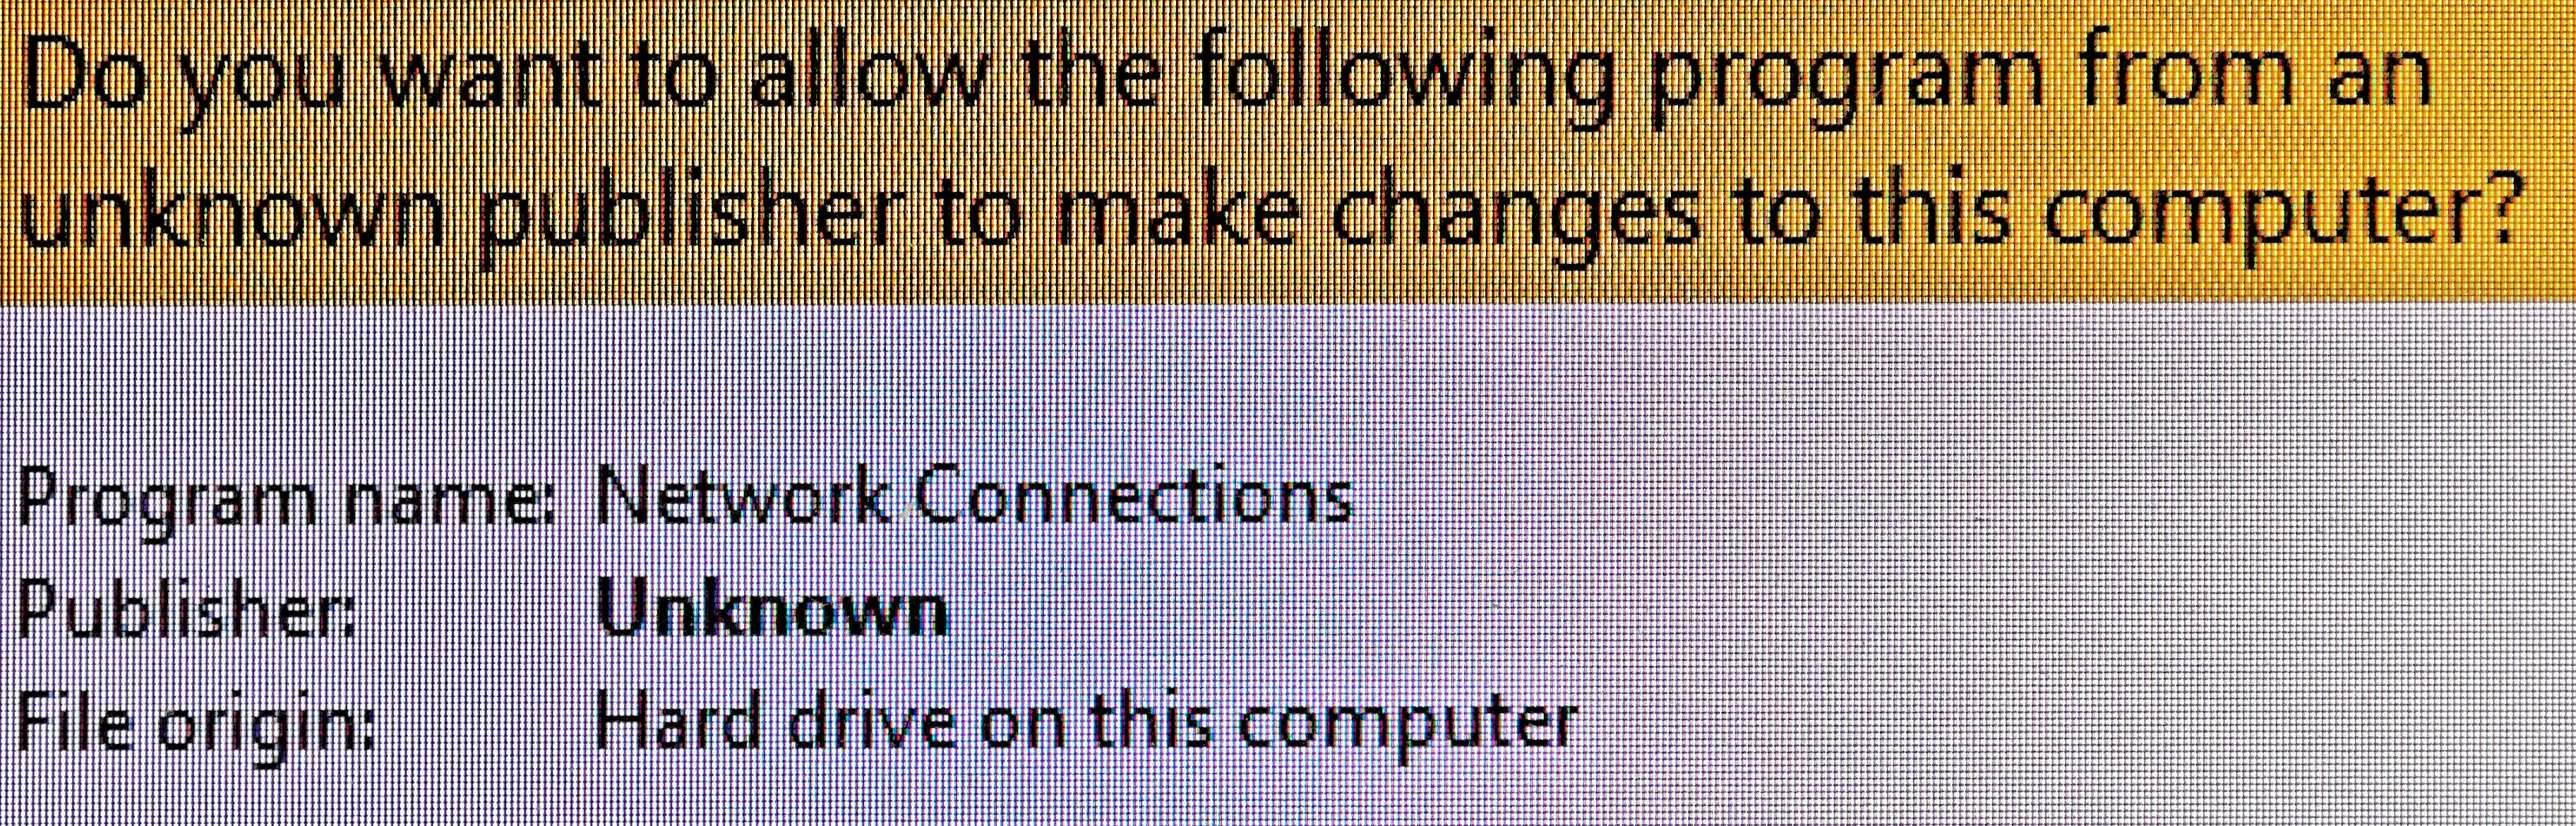 This should be Microsoft-messages-4-detail.jpeg.  Is it missing?